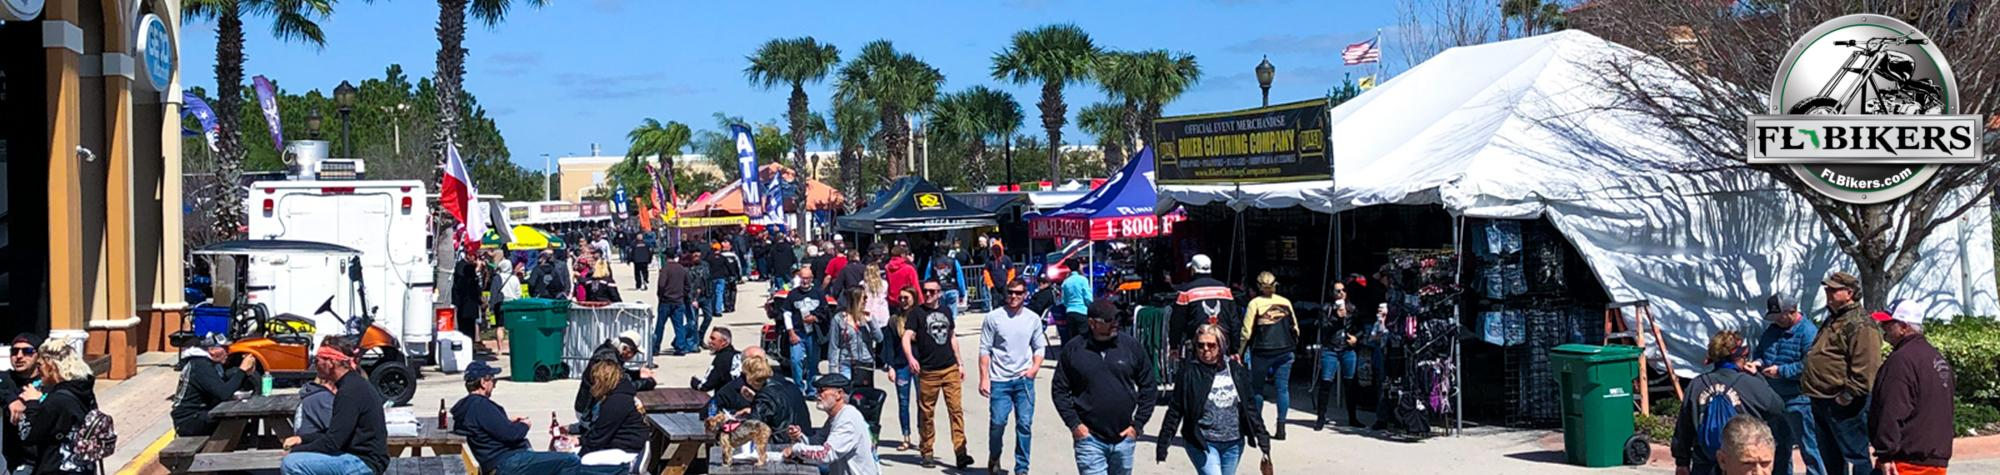 Destination Daytona Bike Week – March 7-8th, 2020